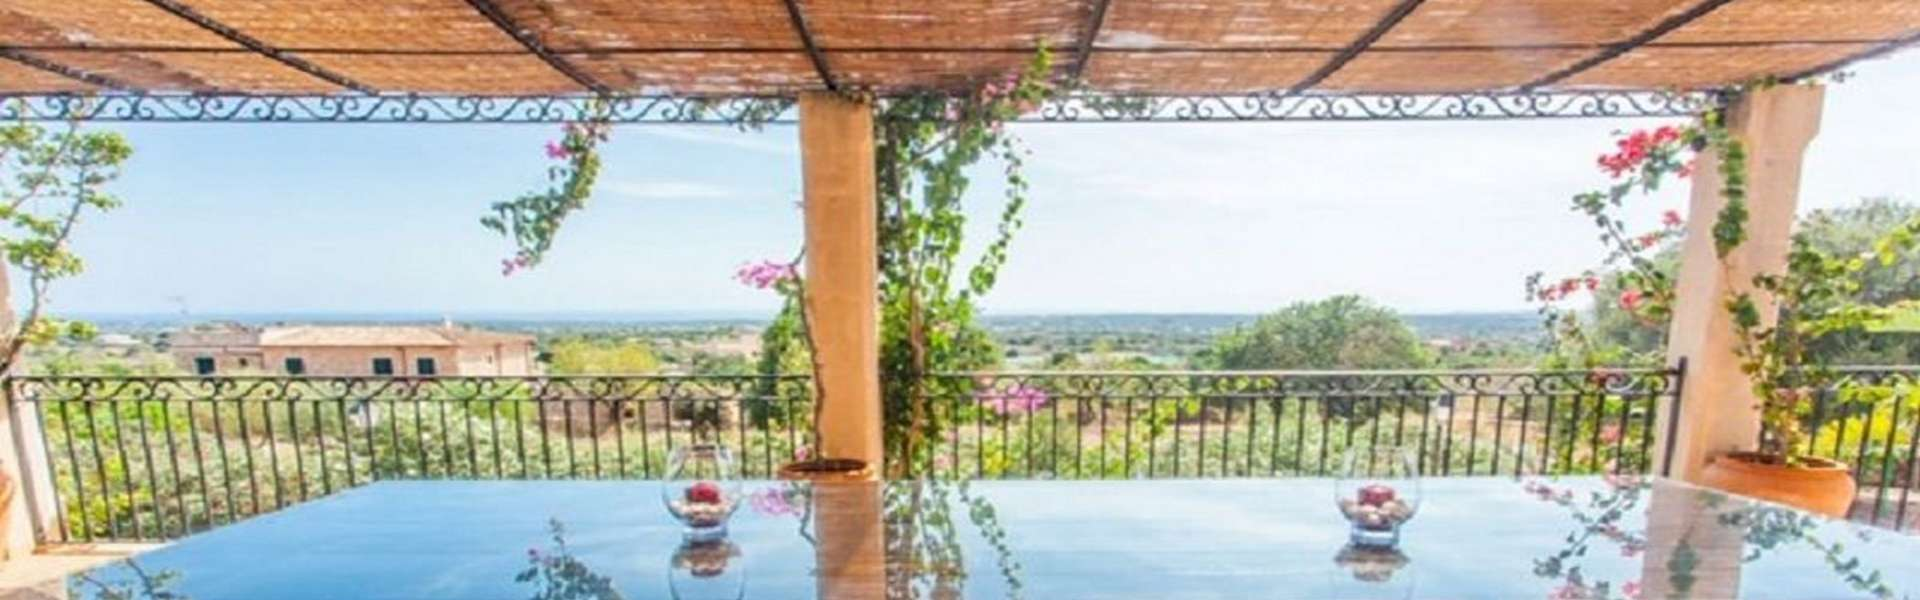 Fantastic finca with spectacular views over the Mediterranean sea for longtermrental